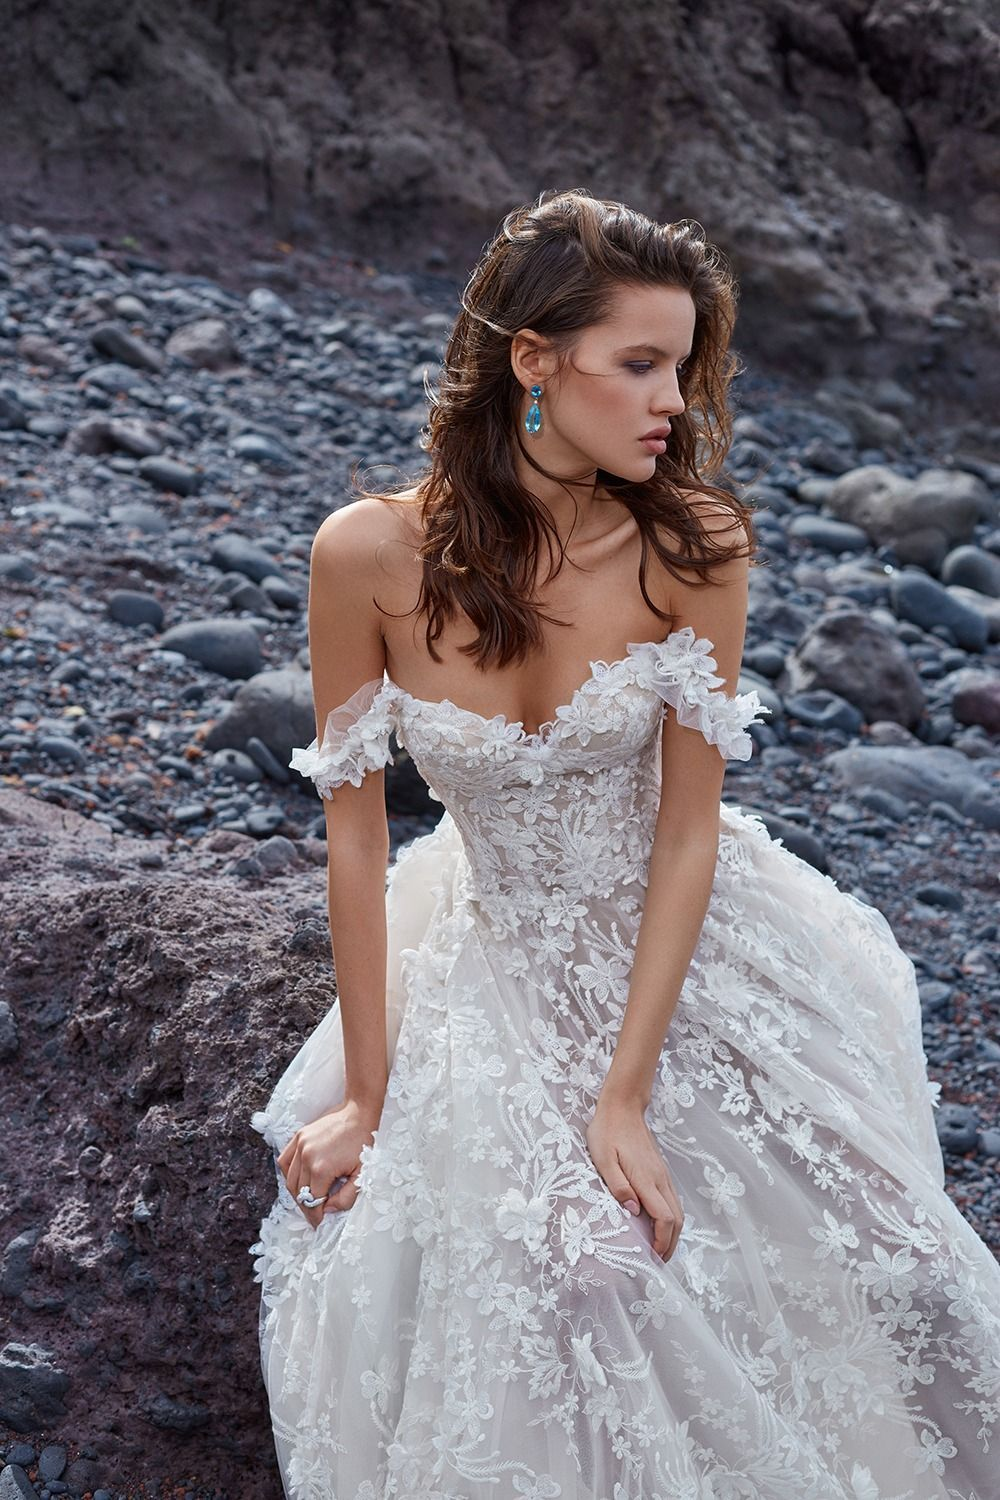 Galia lahav proves that their collection contains the prettiest